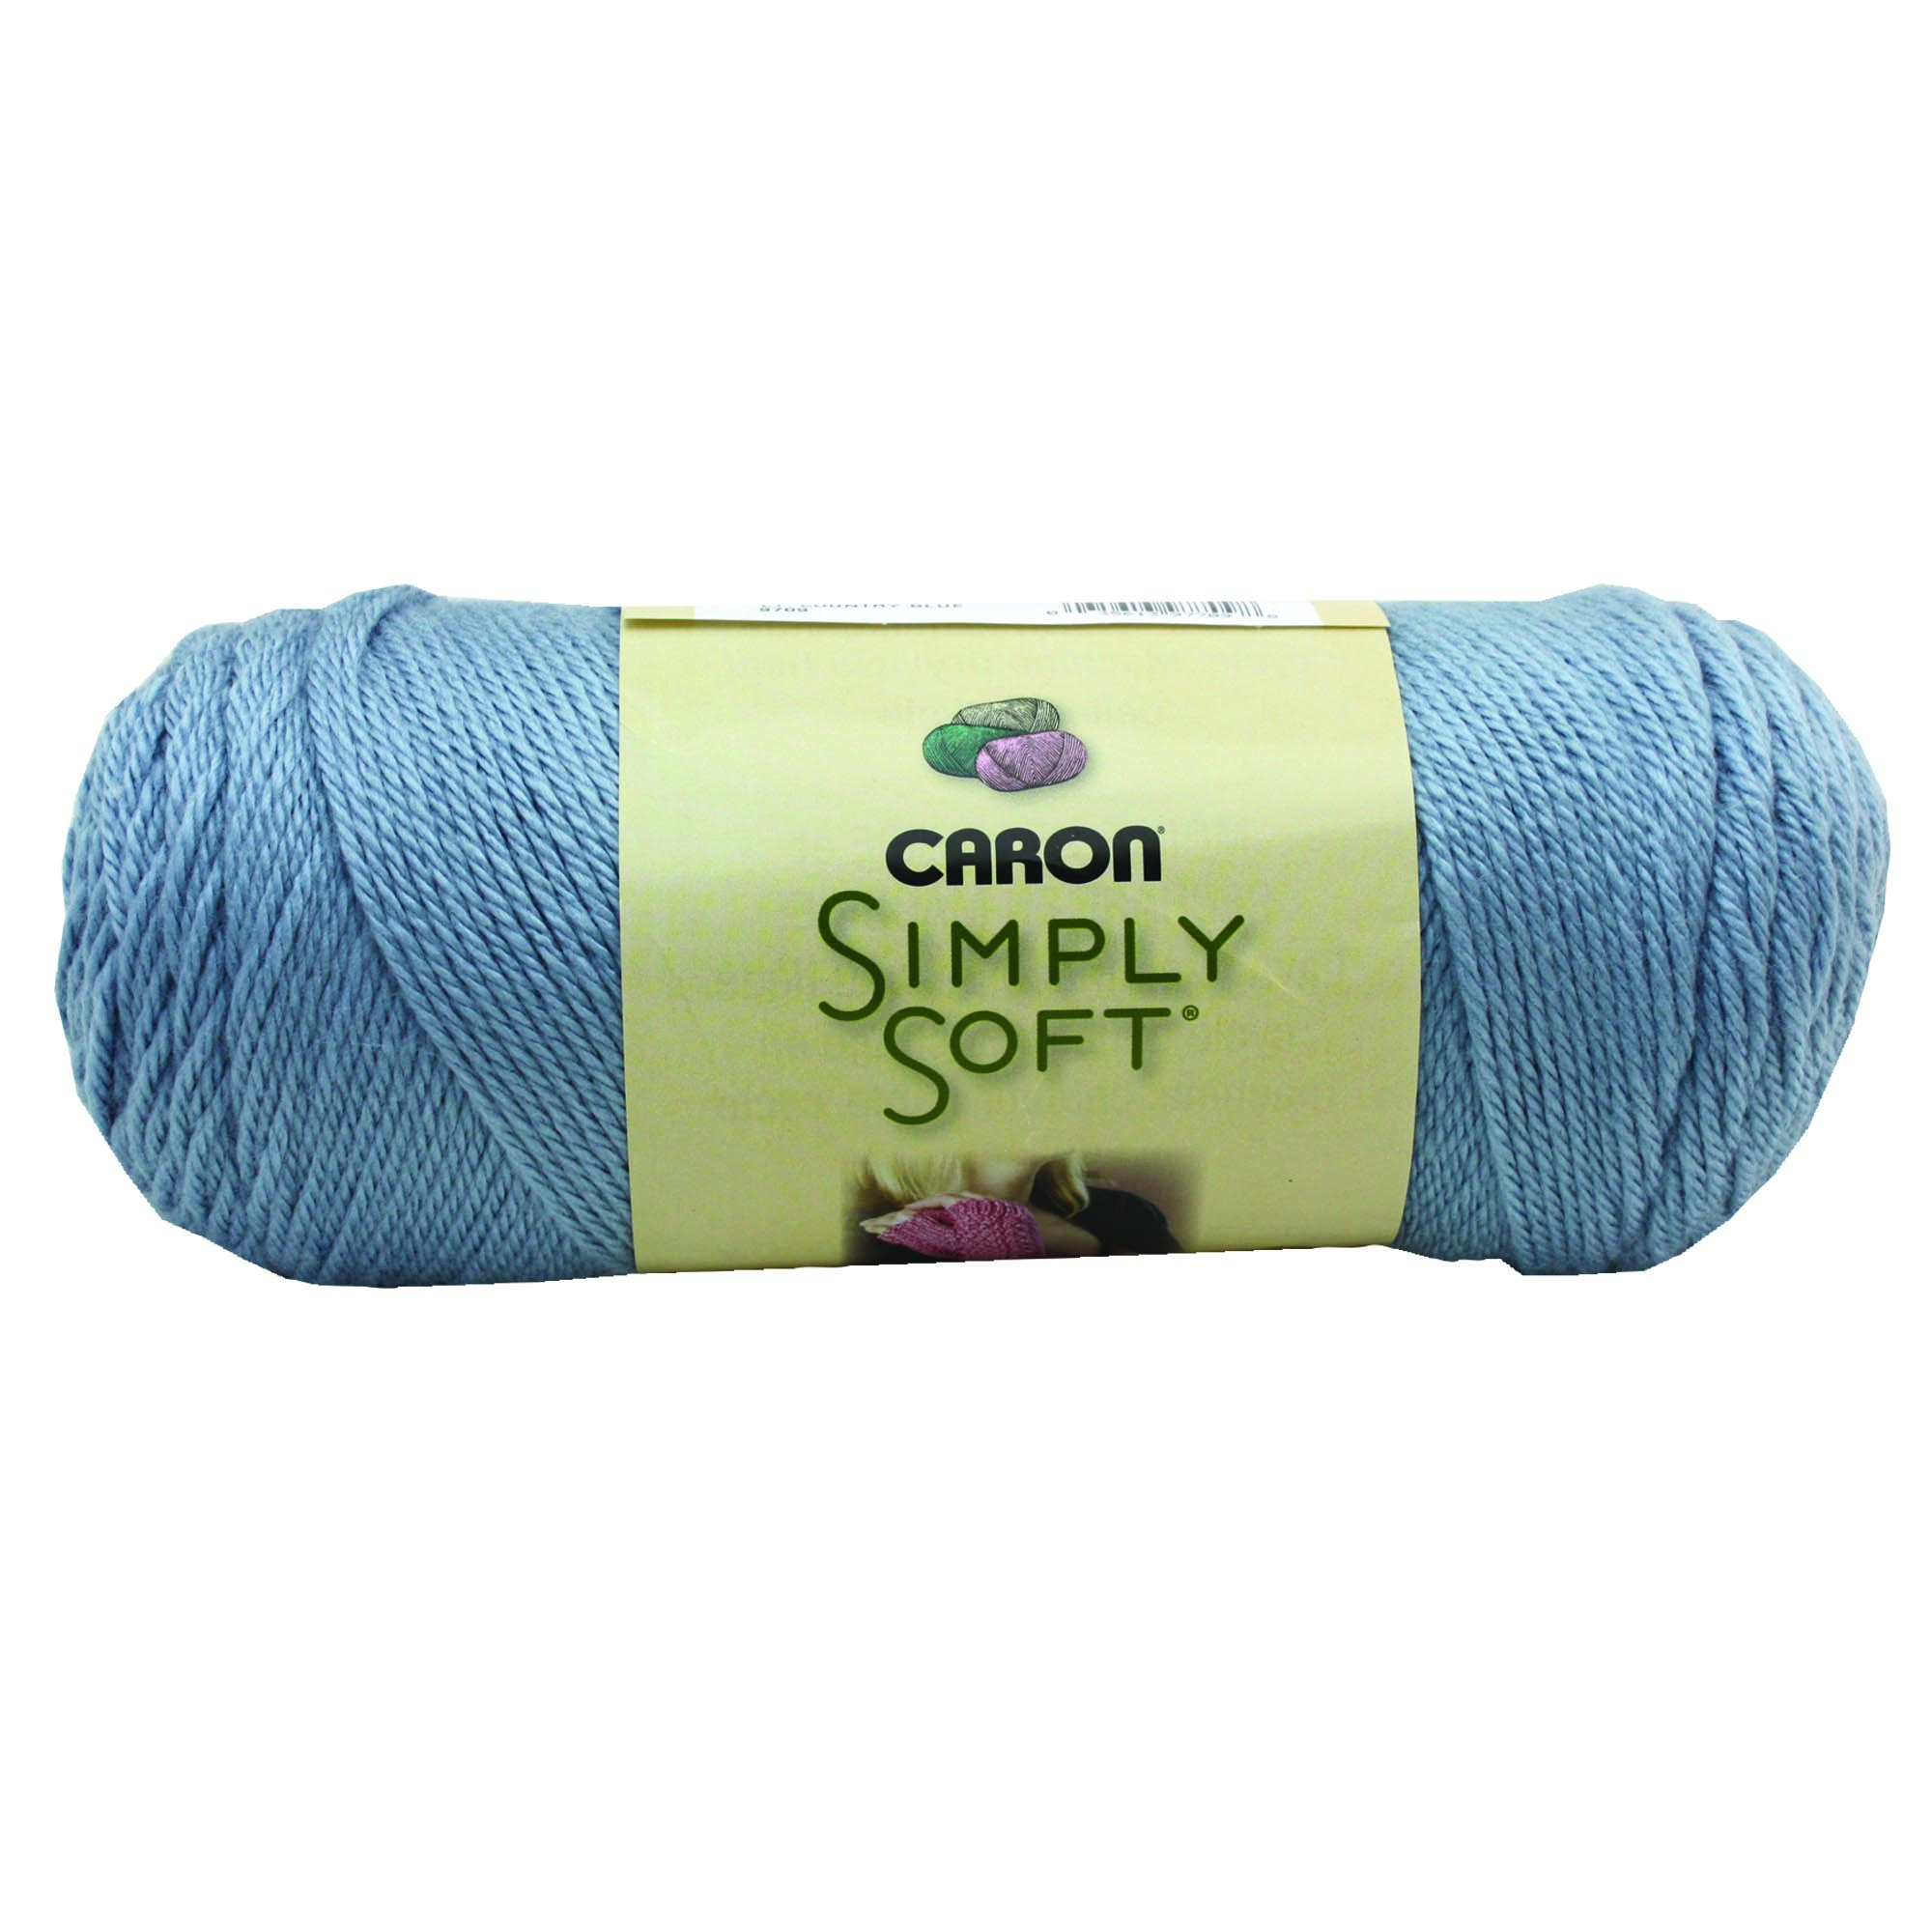 Caron Simply Soft Lt Country Blue 170g - 6oz